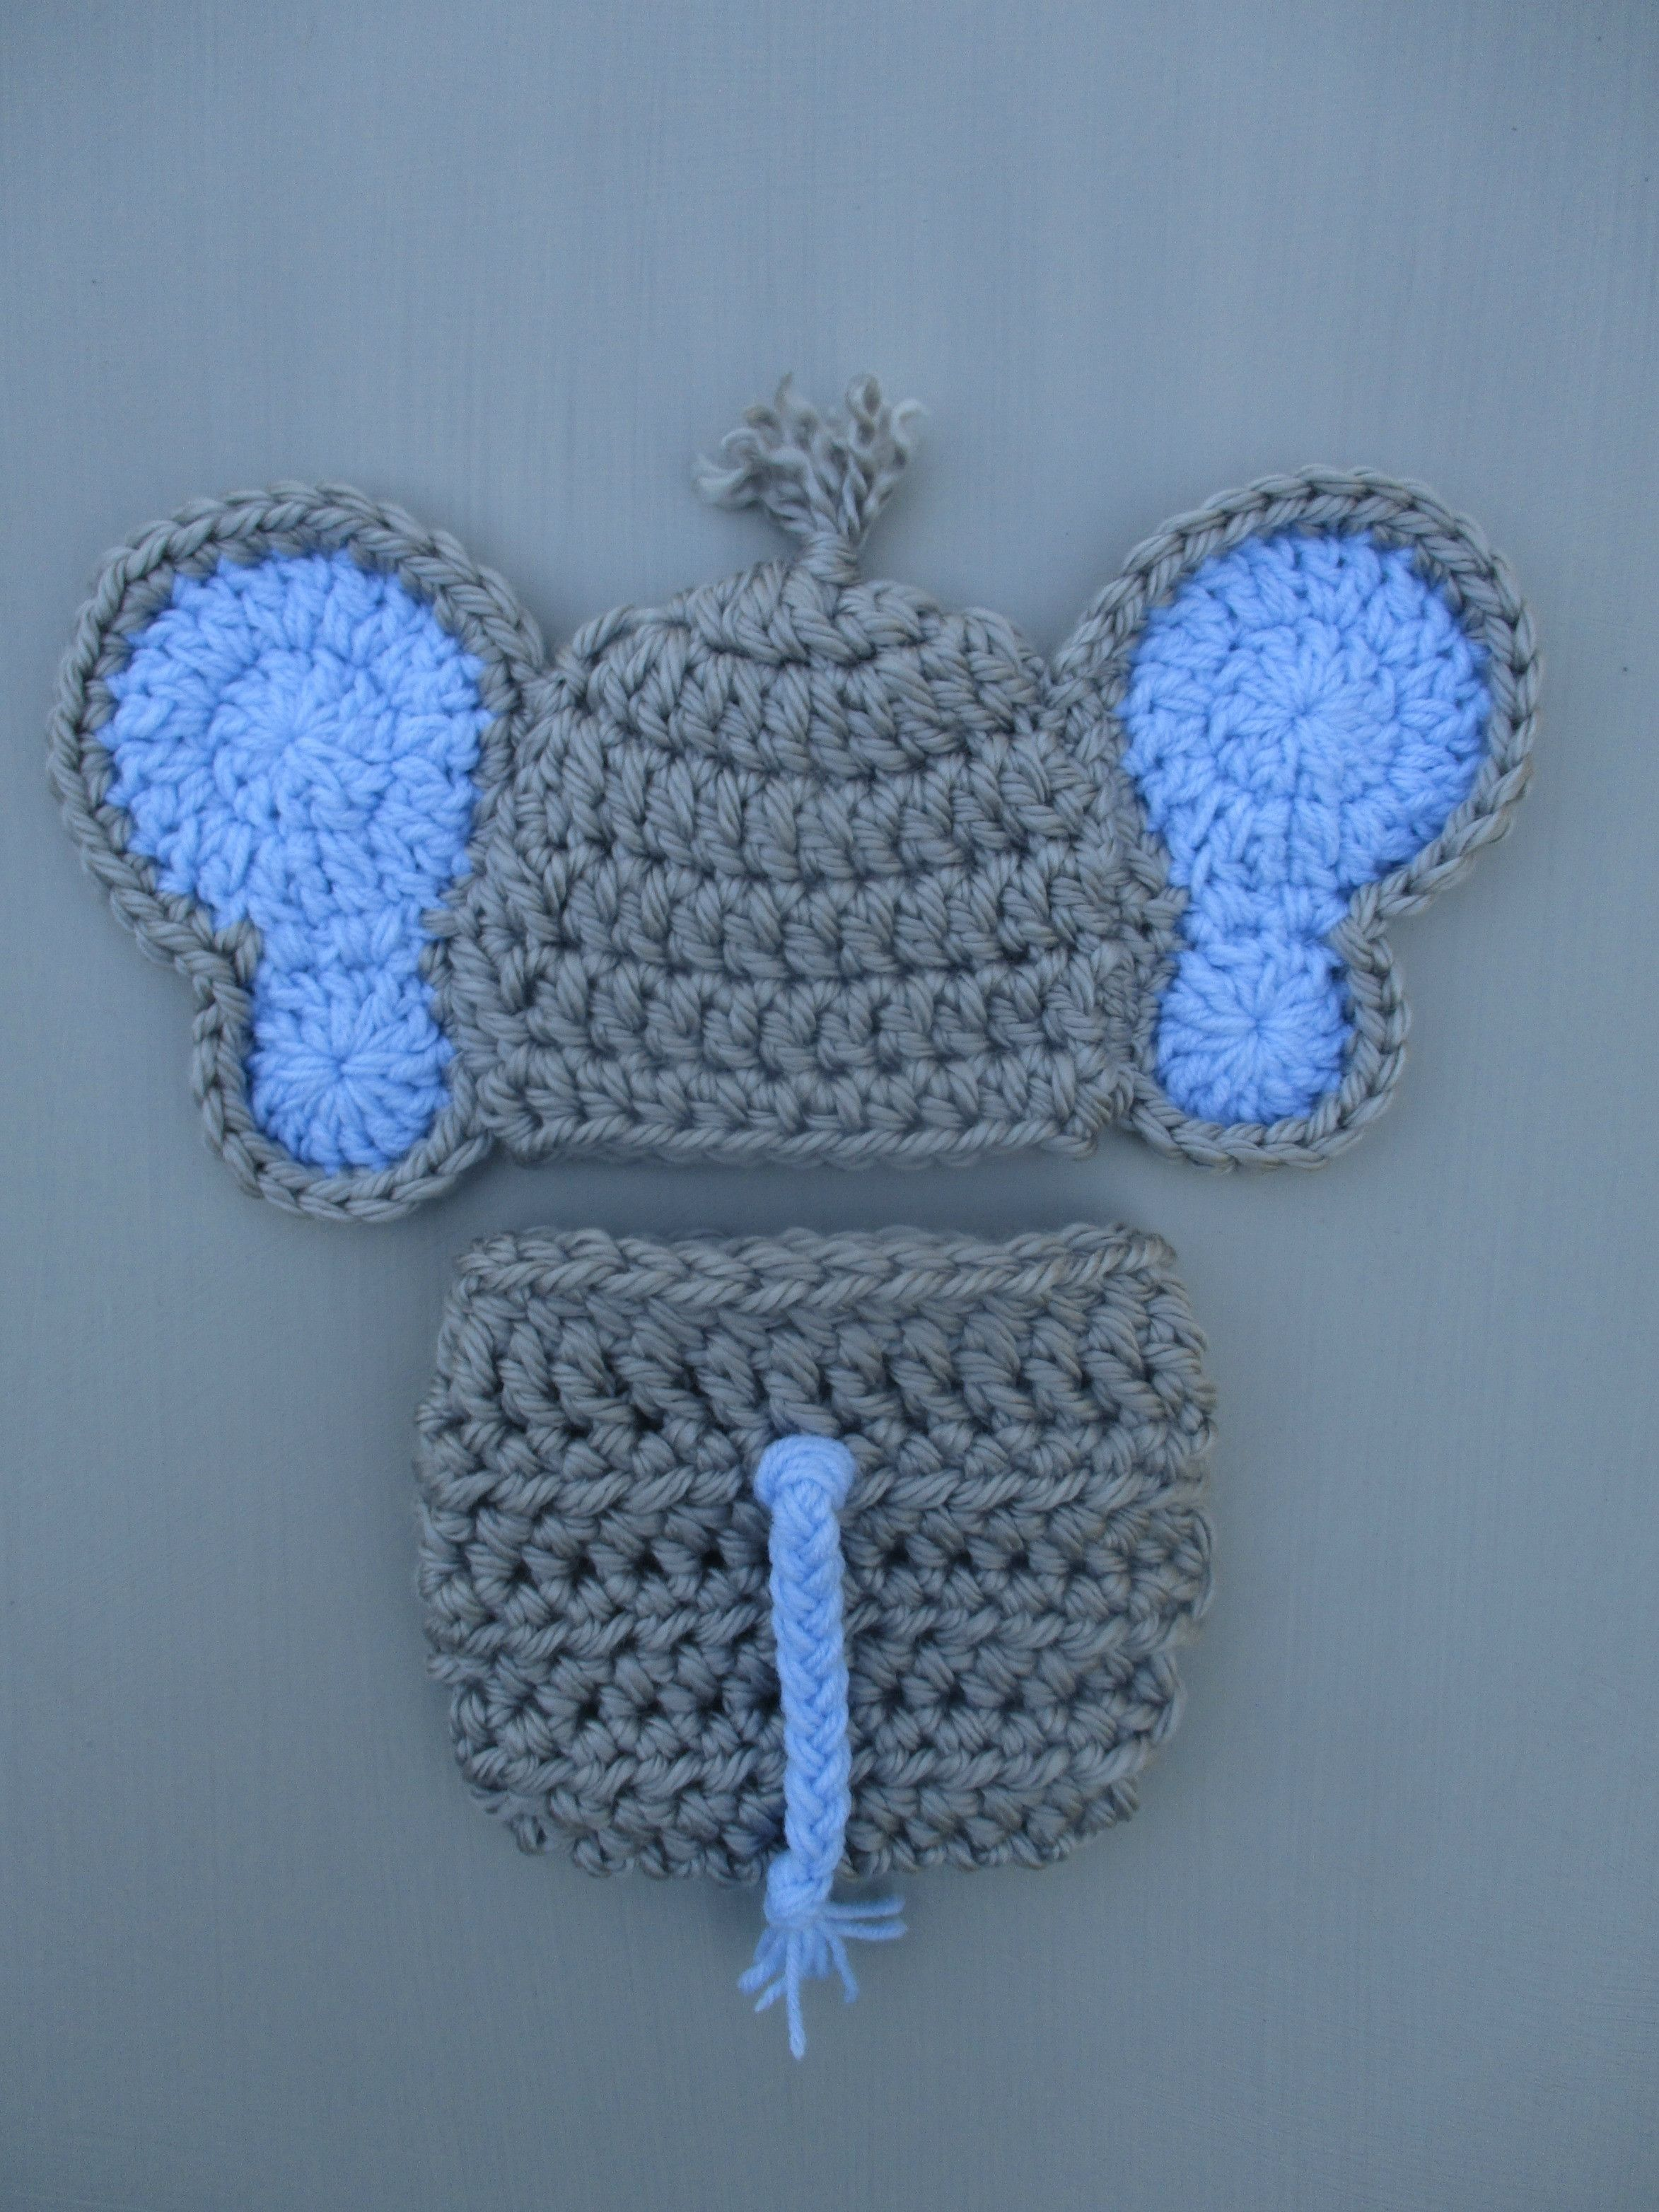 Crochet Elephant Baby Outfit Dallas Grey Newborn Photo Prop ...